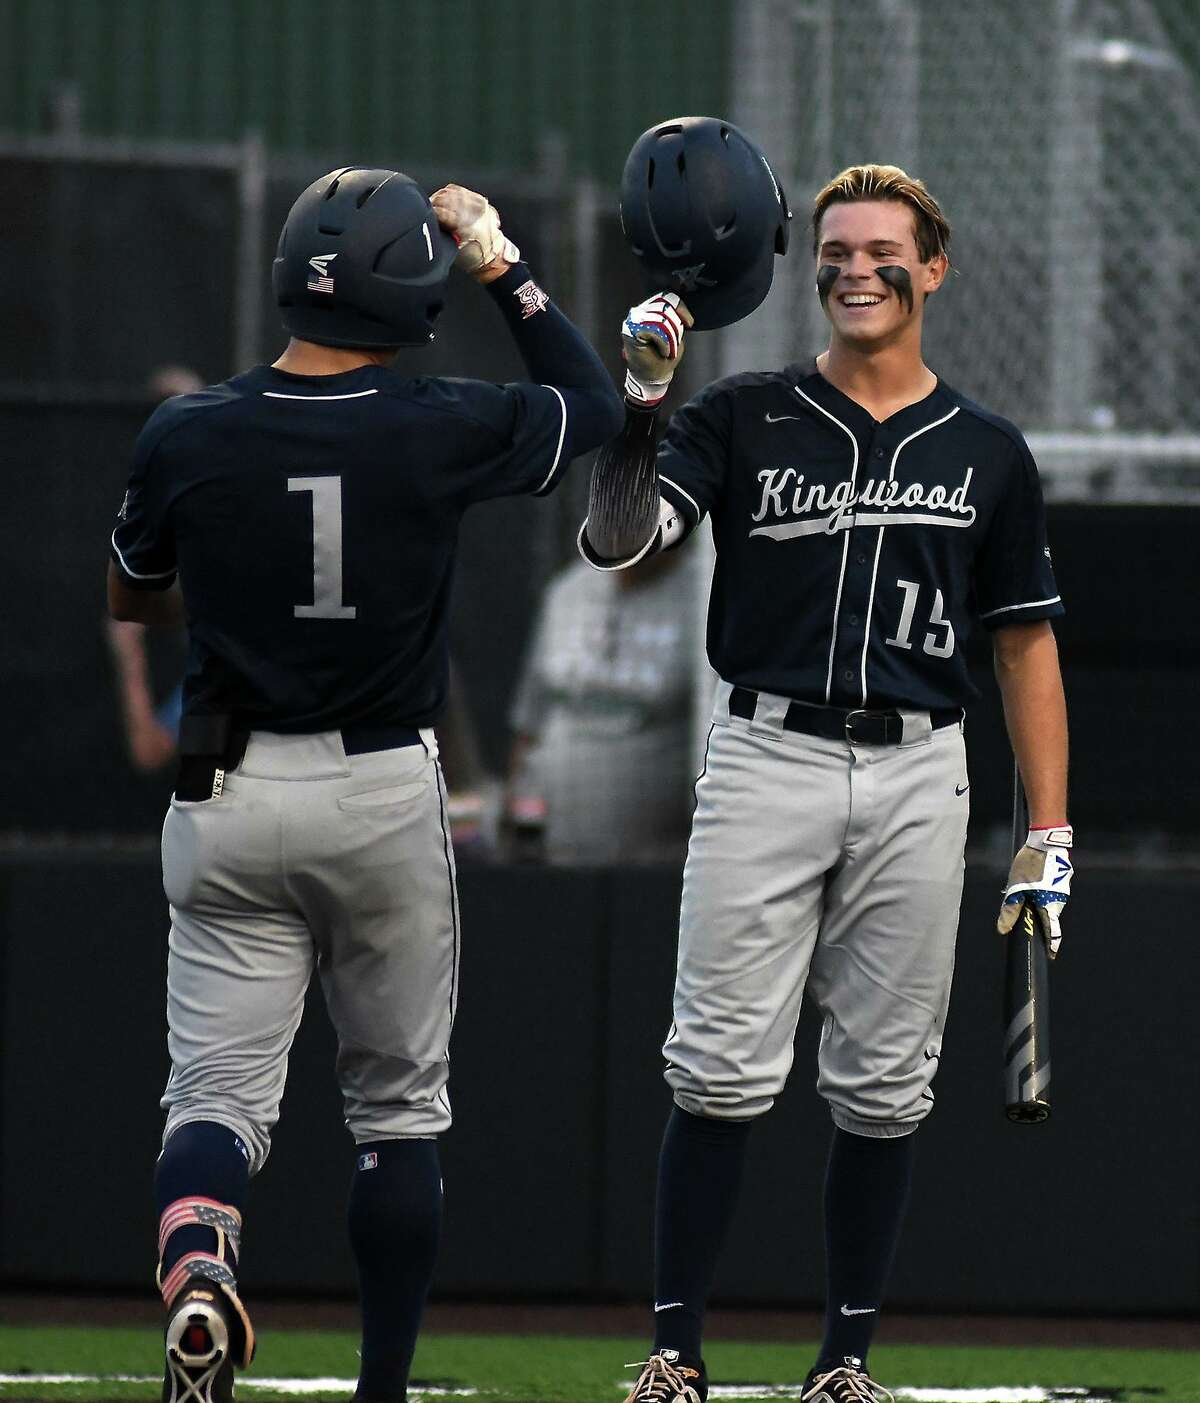 Kingwood leftfielder Luke Johnson (15) greets teammate Masyn Winn (1) at home plate after Winn's homerun in the bottom of the third inning against Clear Falls in Game One of their best of three series at Humble High School on May 10, 2019. (Photo by Jerry Baker)